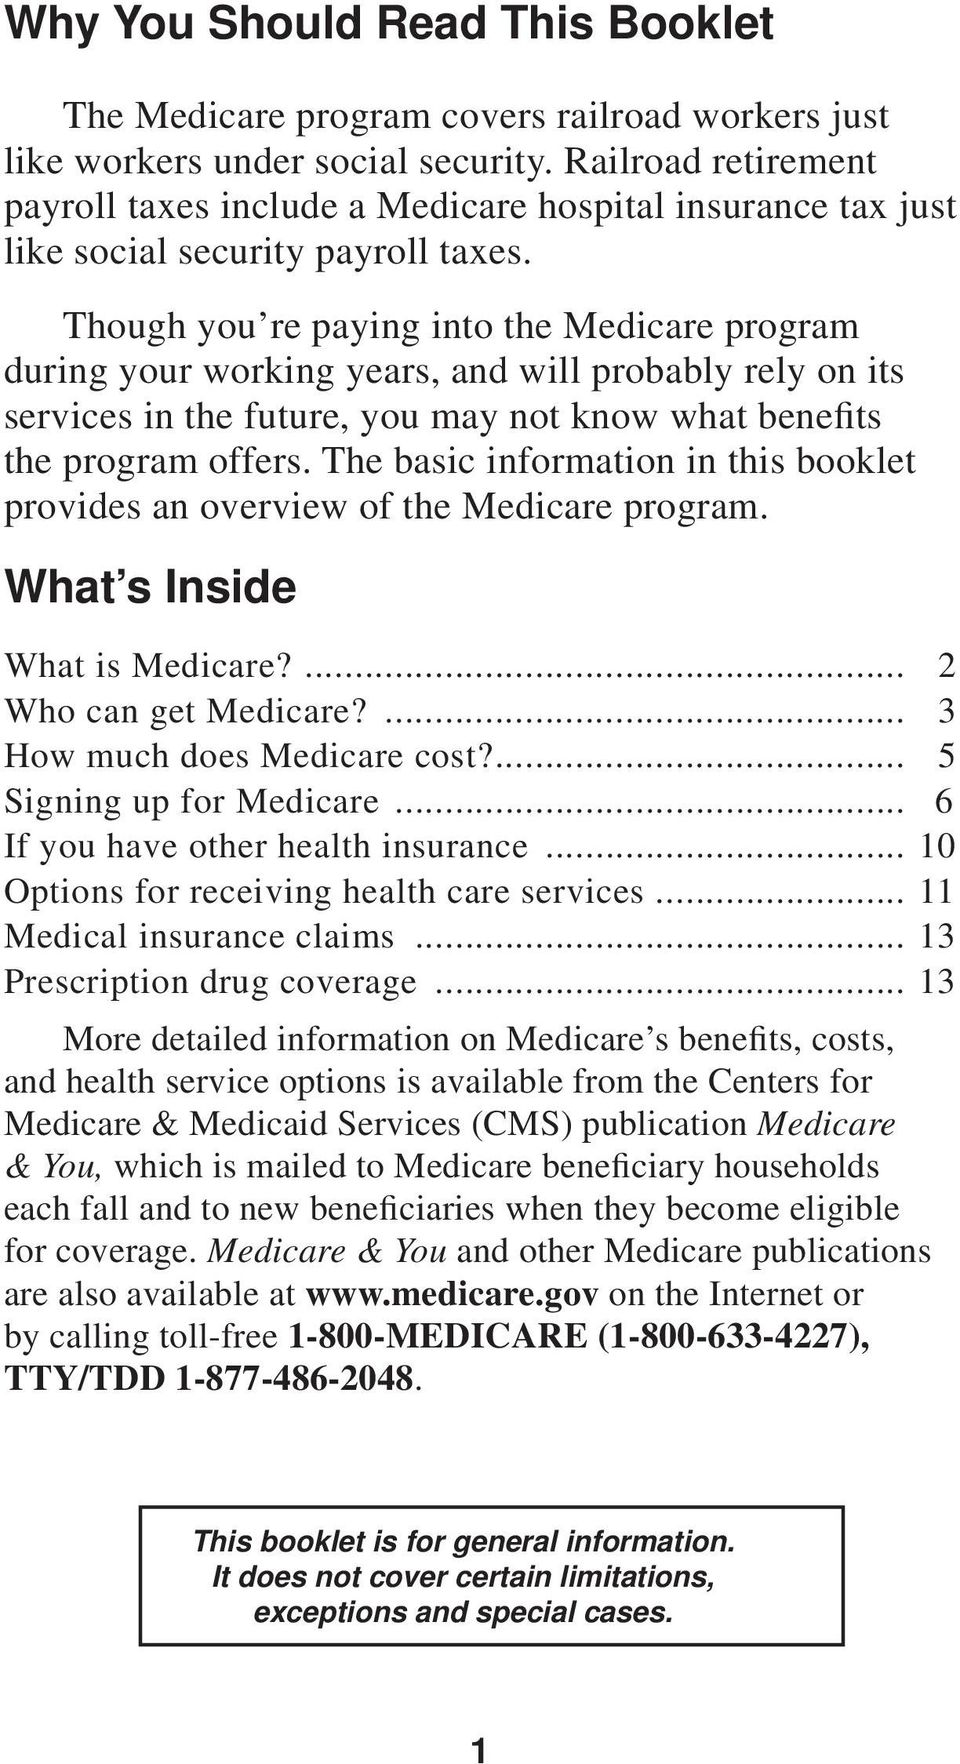 Though you re paying into the Medicare program during your working years, and will probably rely on its services in the future, you may not know what benefits the program offers.